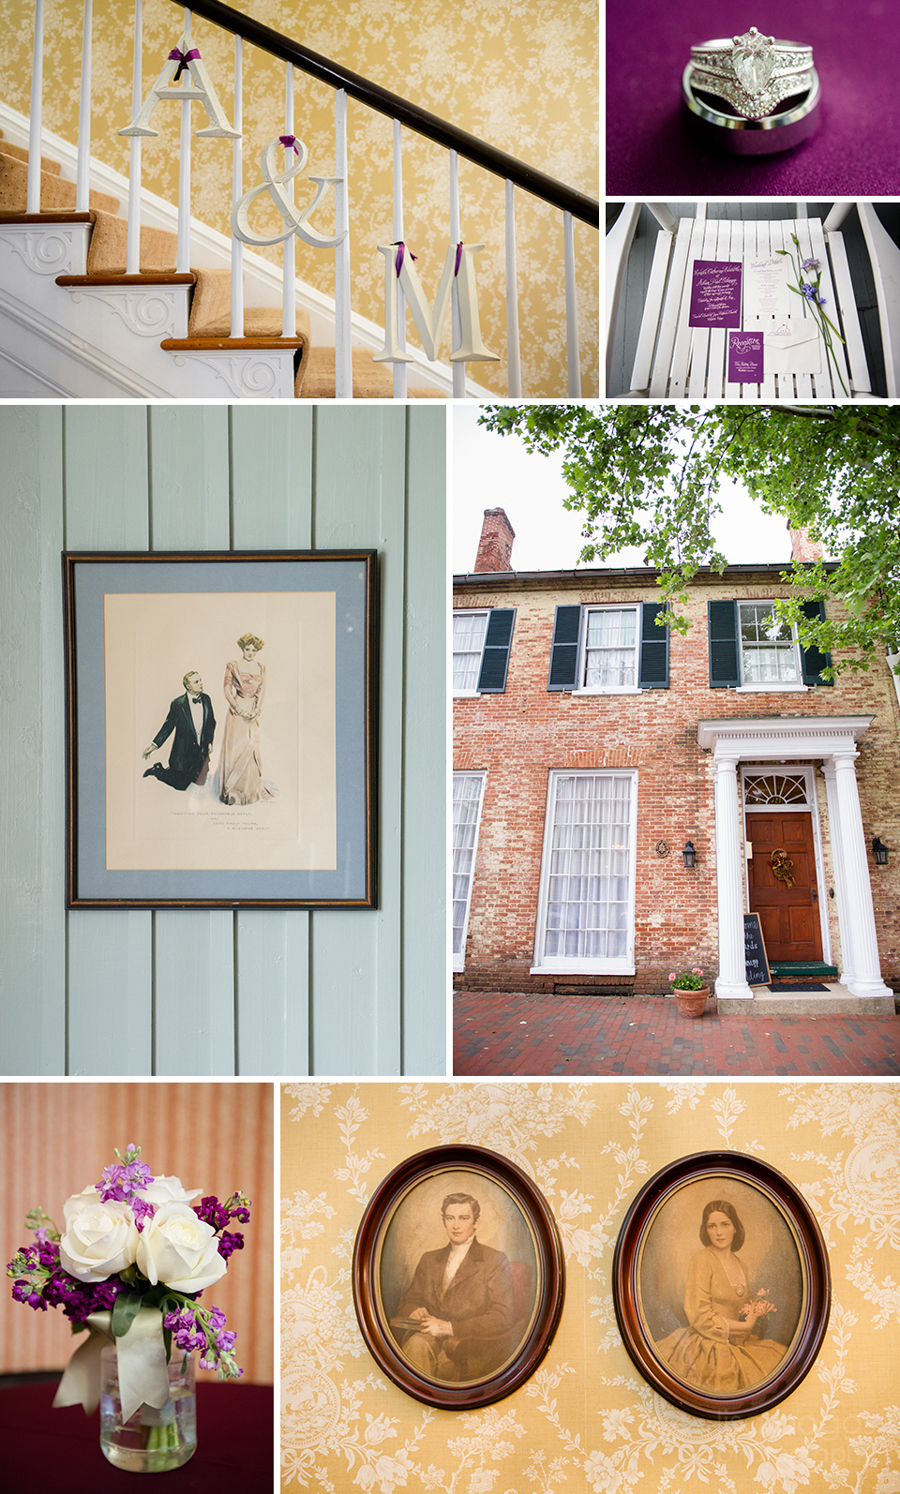 m&a_old_town_winchester_virginia_wedding_01